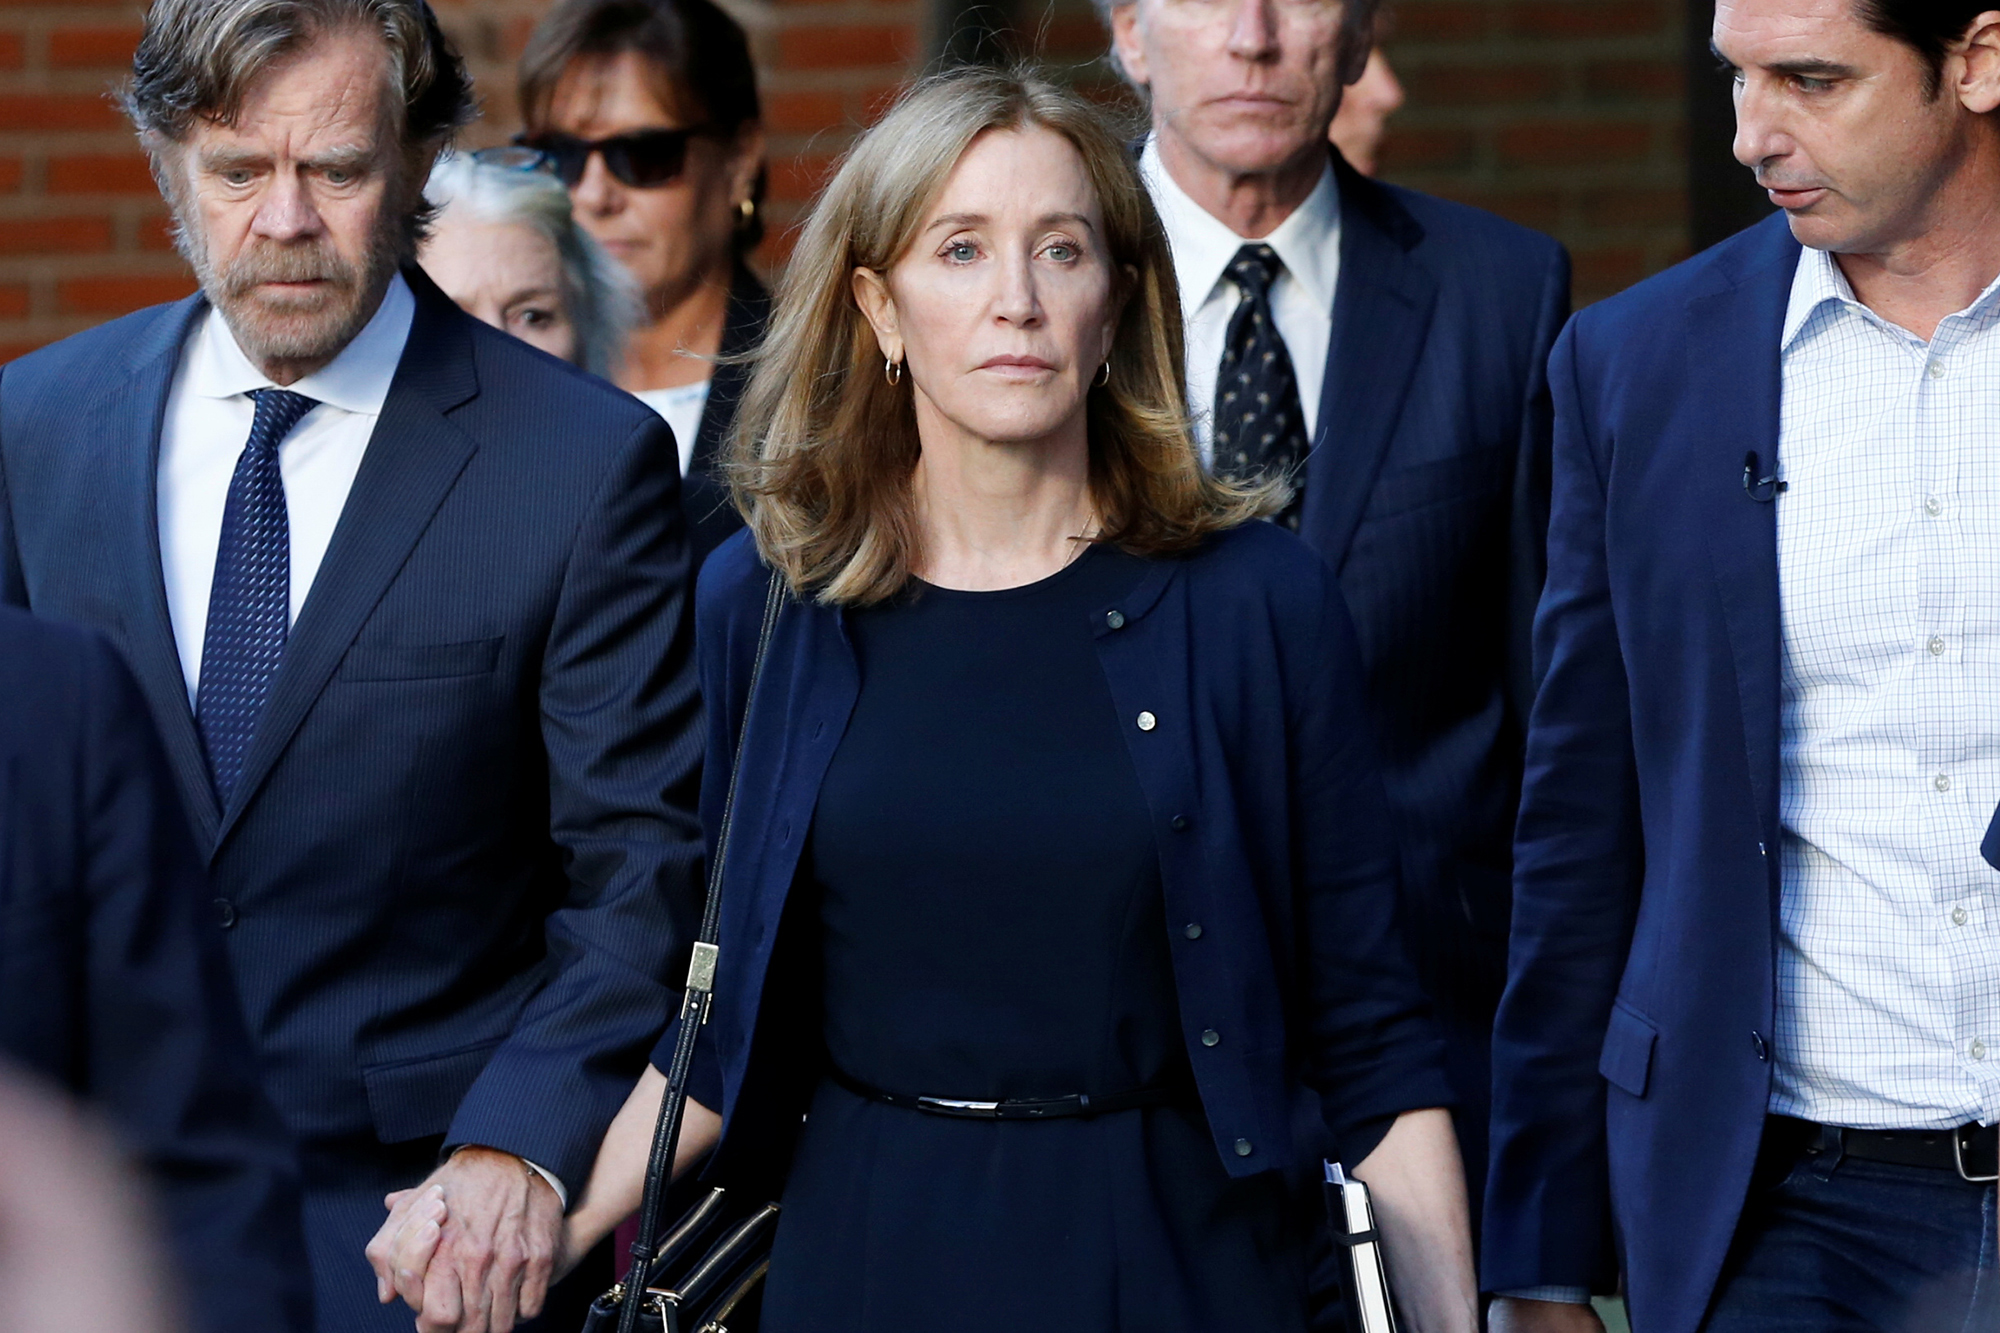 Ex-con Felicity Huffman scores first acting role after prison stint